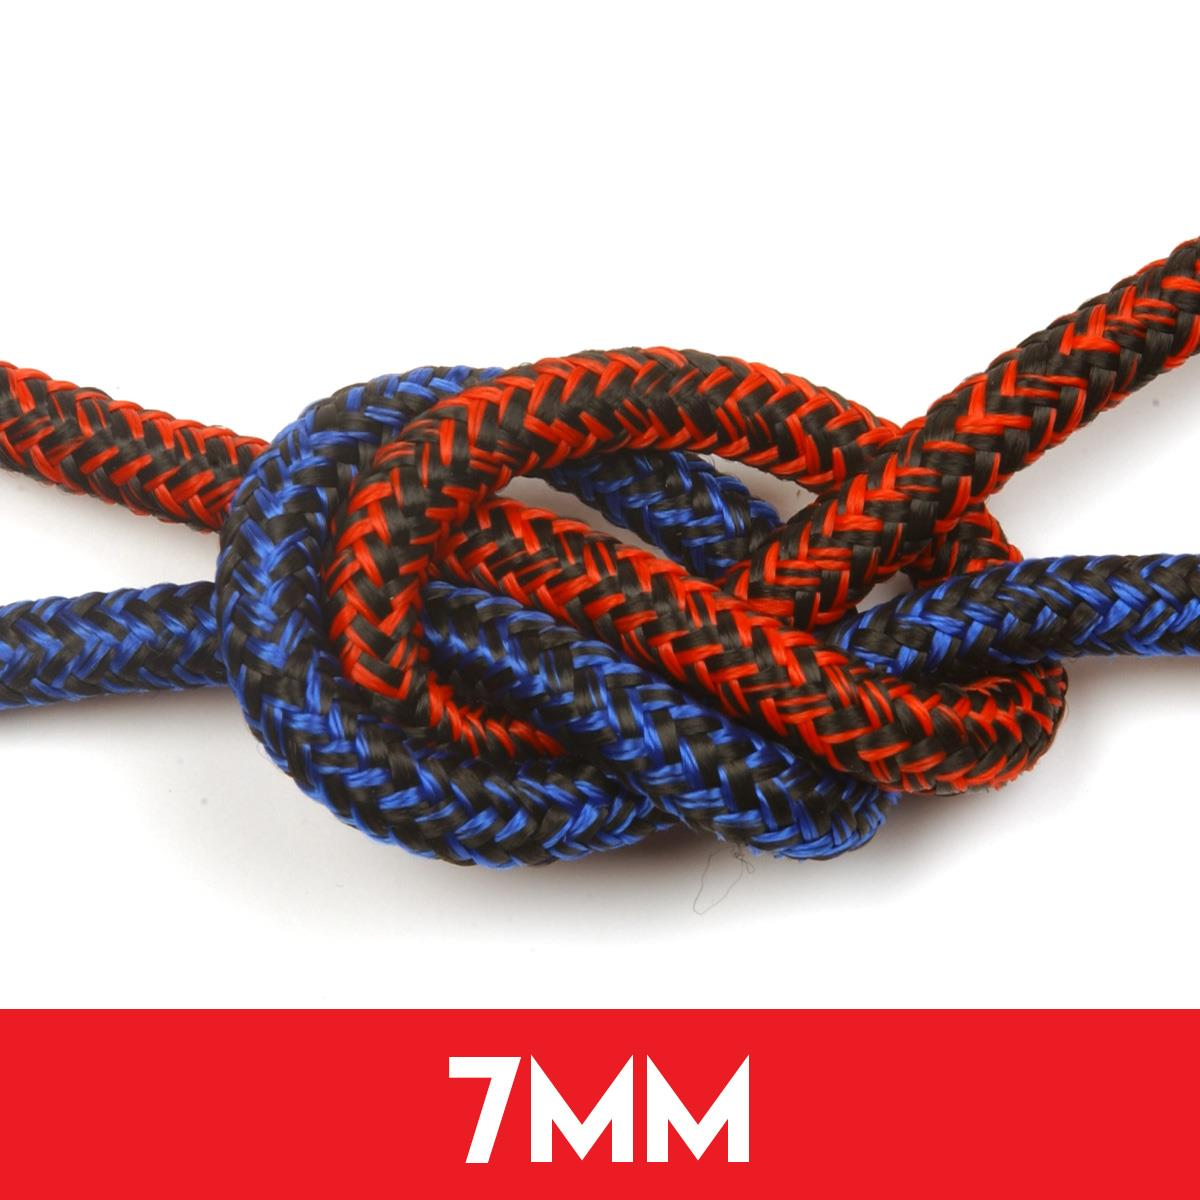 7mm Kingfisher Evo Sheet Rope